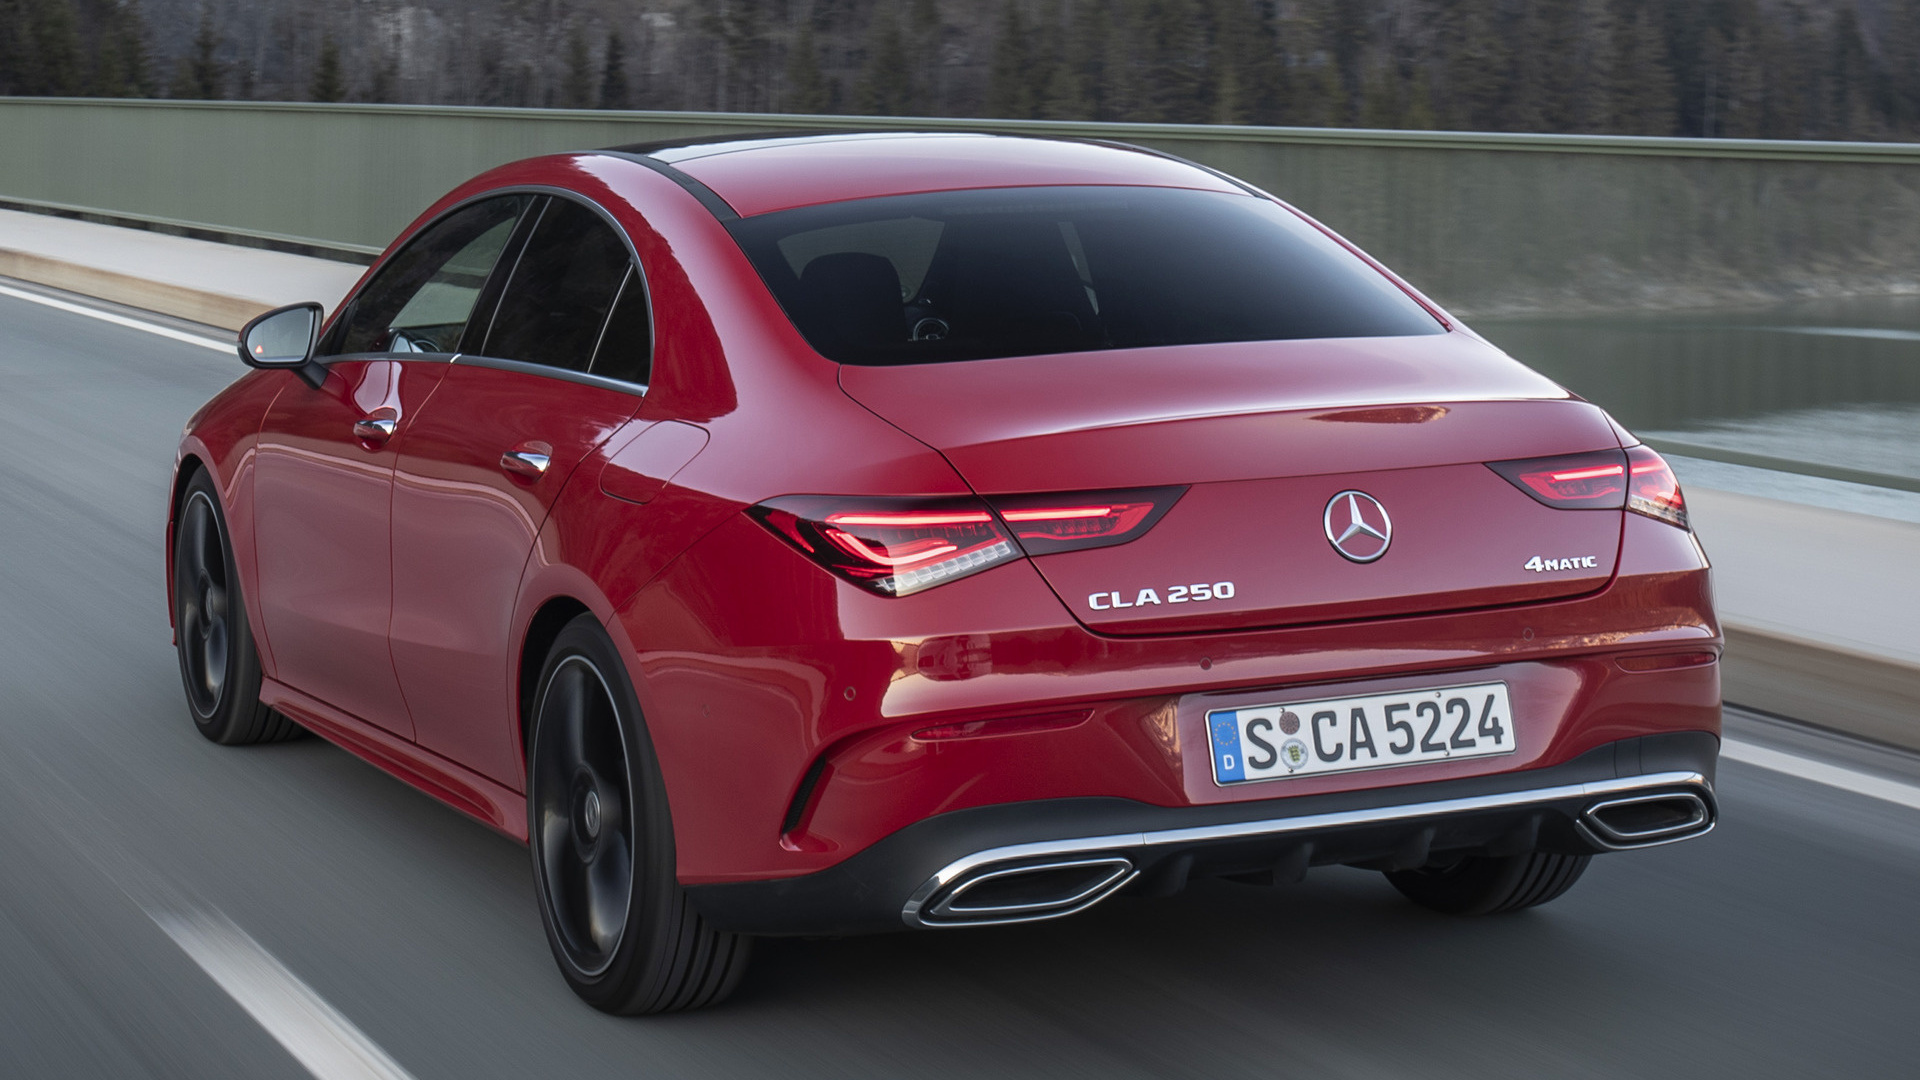 Mercedes Benz Cla >> 2019 Mercedes-Benz CLA-Class AMG Line - Wallpapers and HD ...